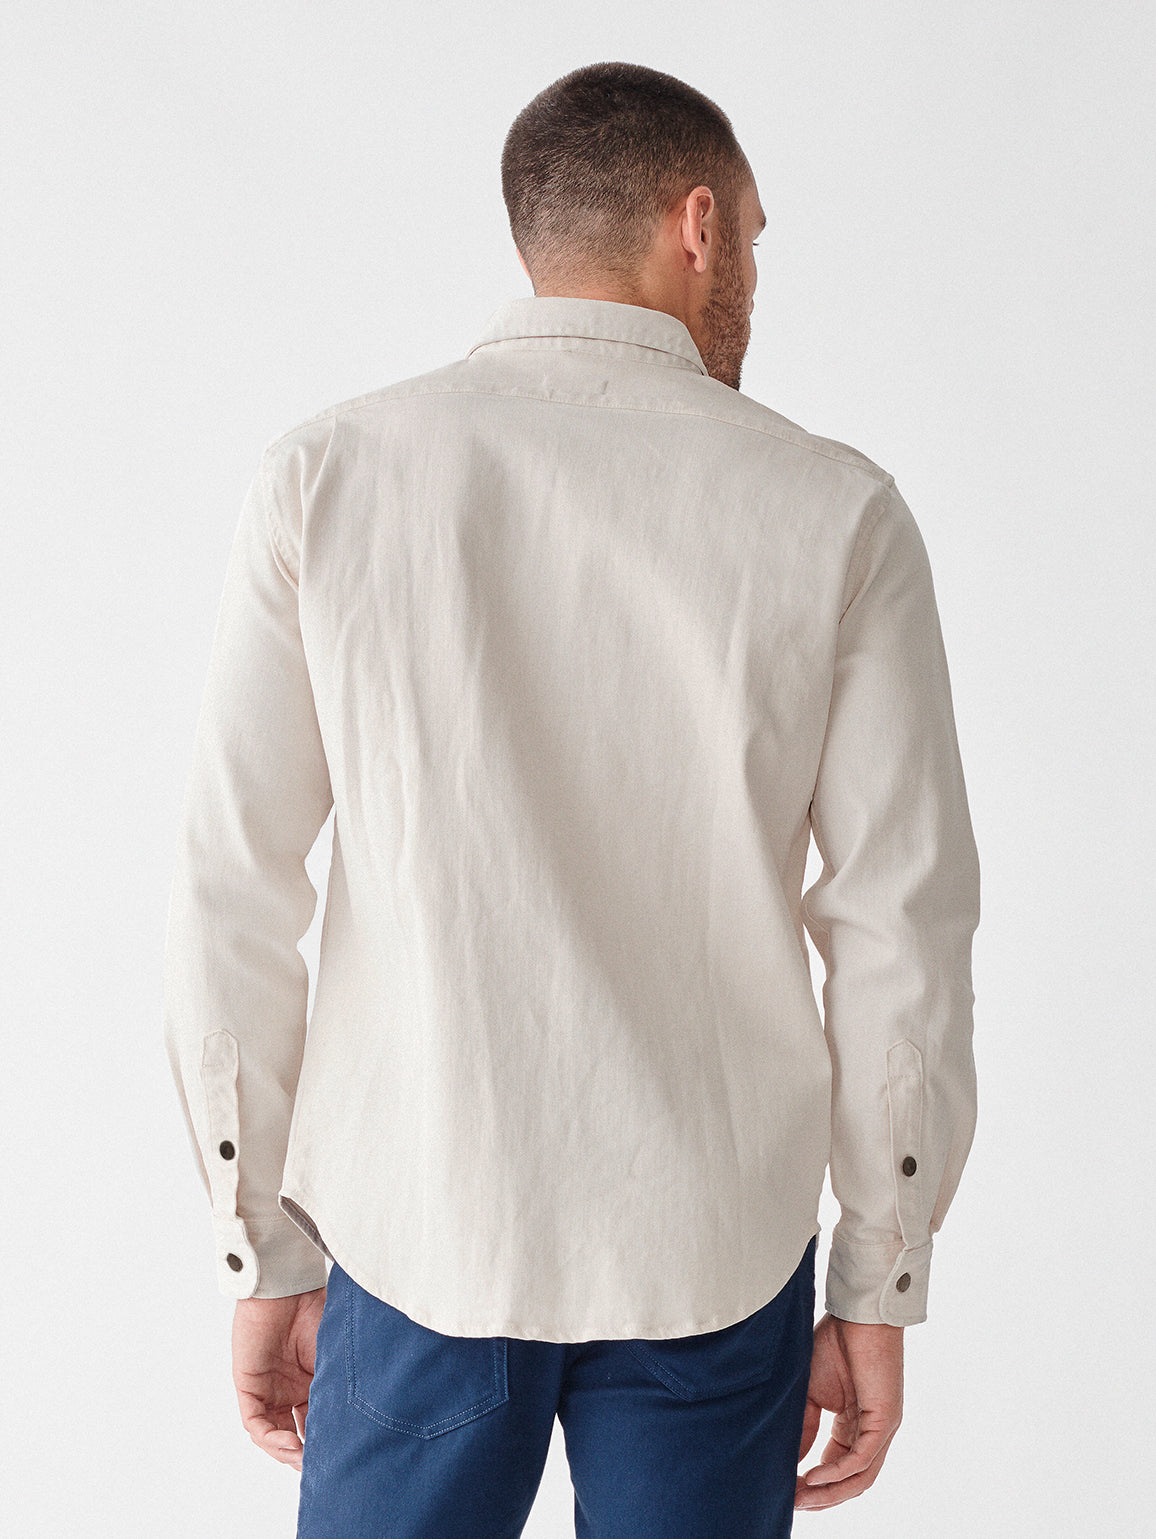 Lance Shirt Jacket | Moonlight